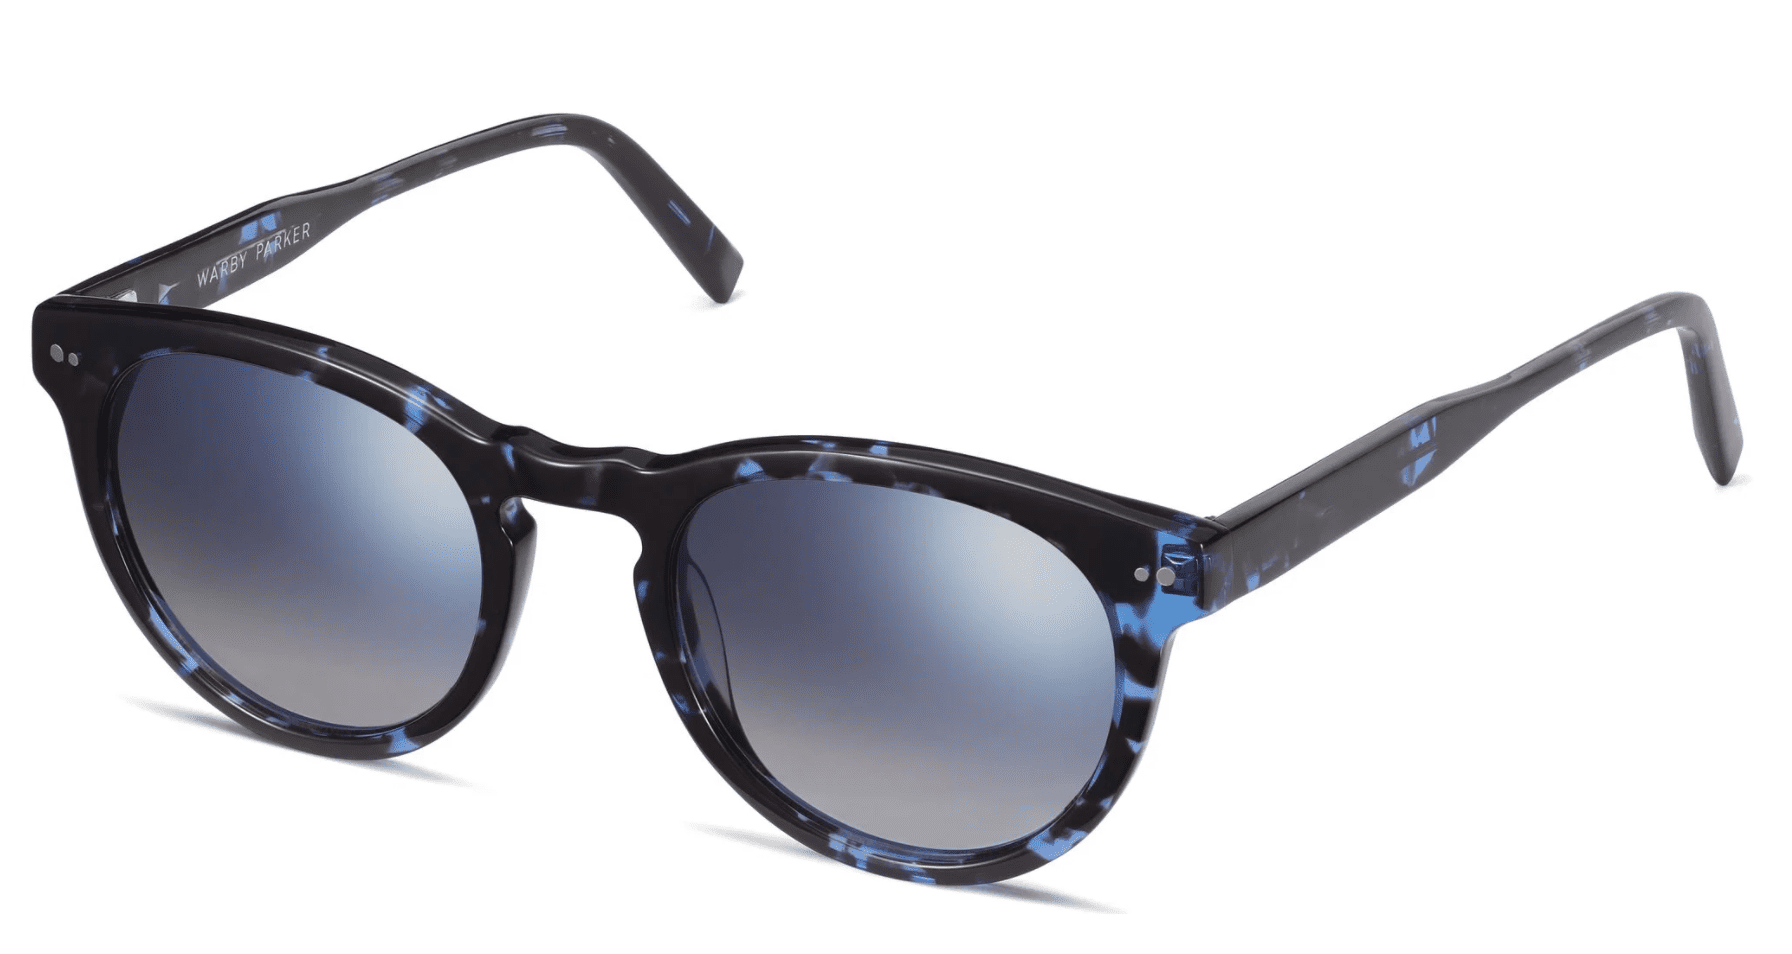 Warby Parker Hayes Sunglasses